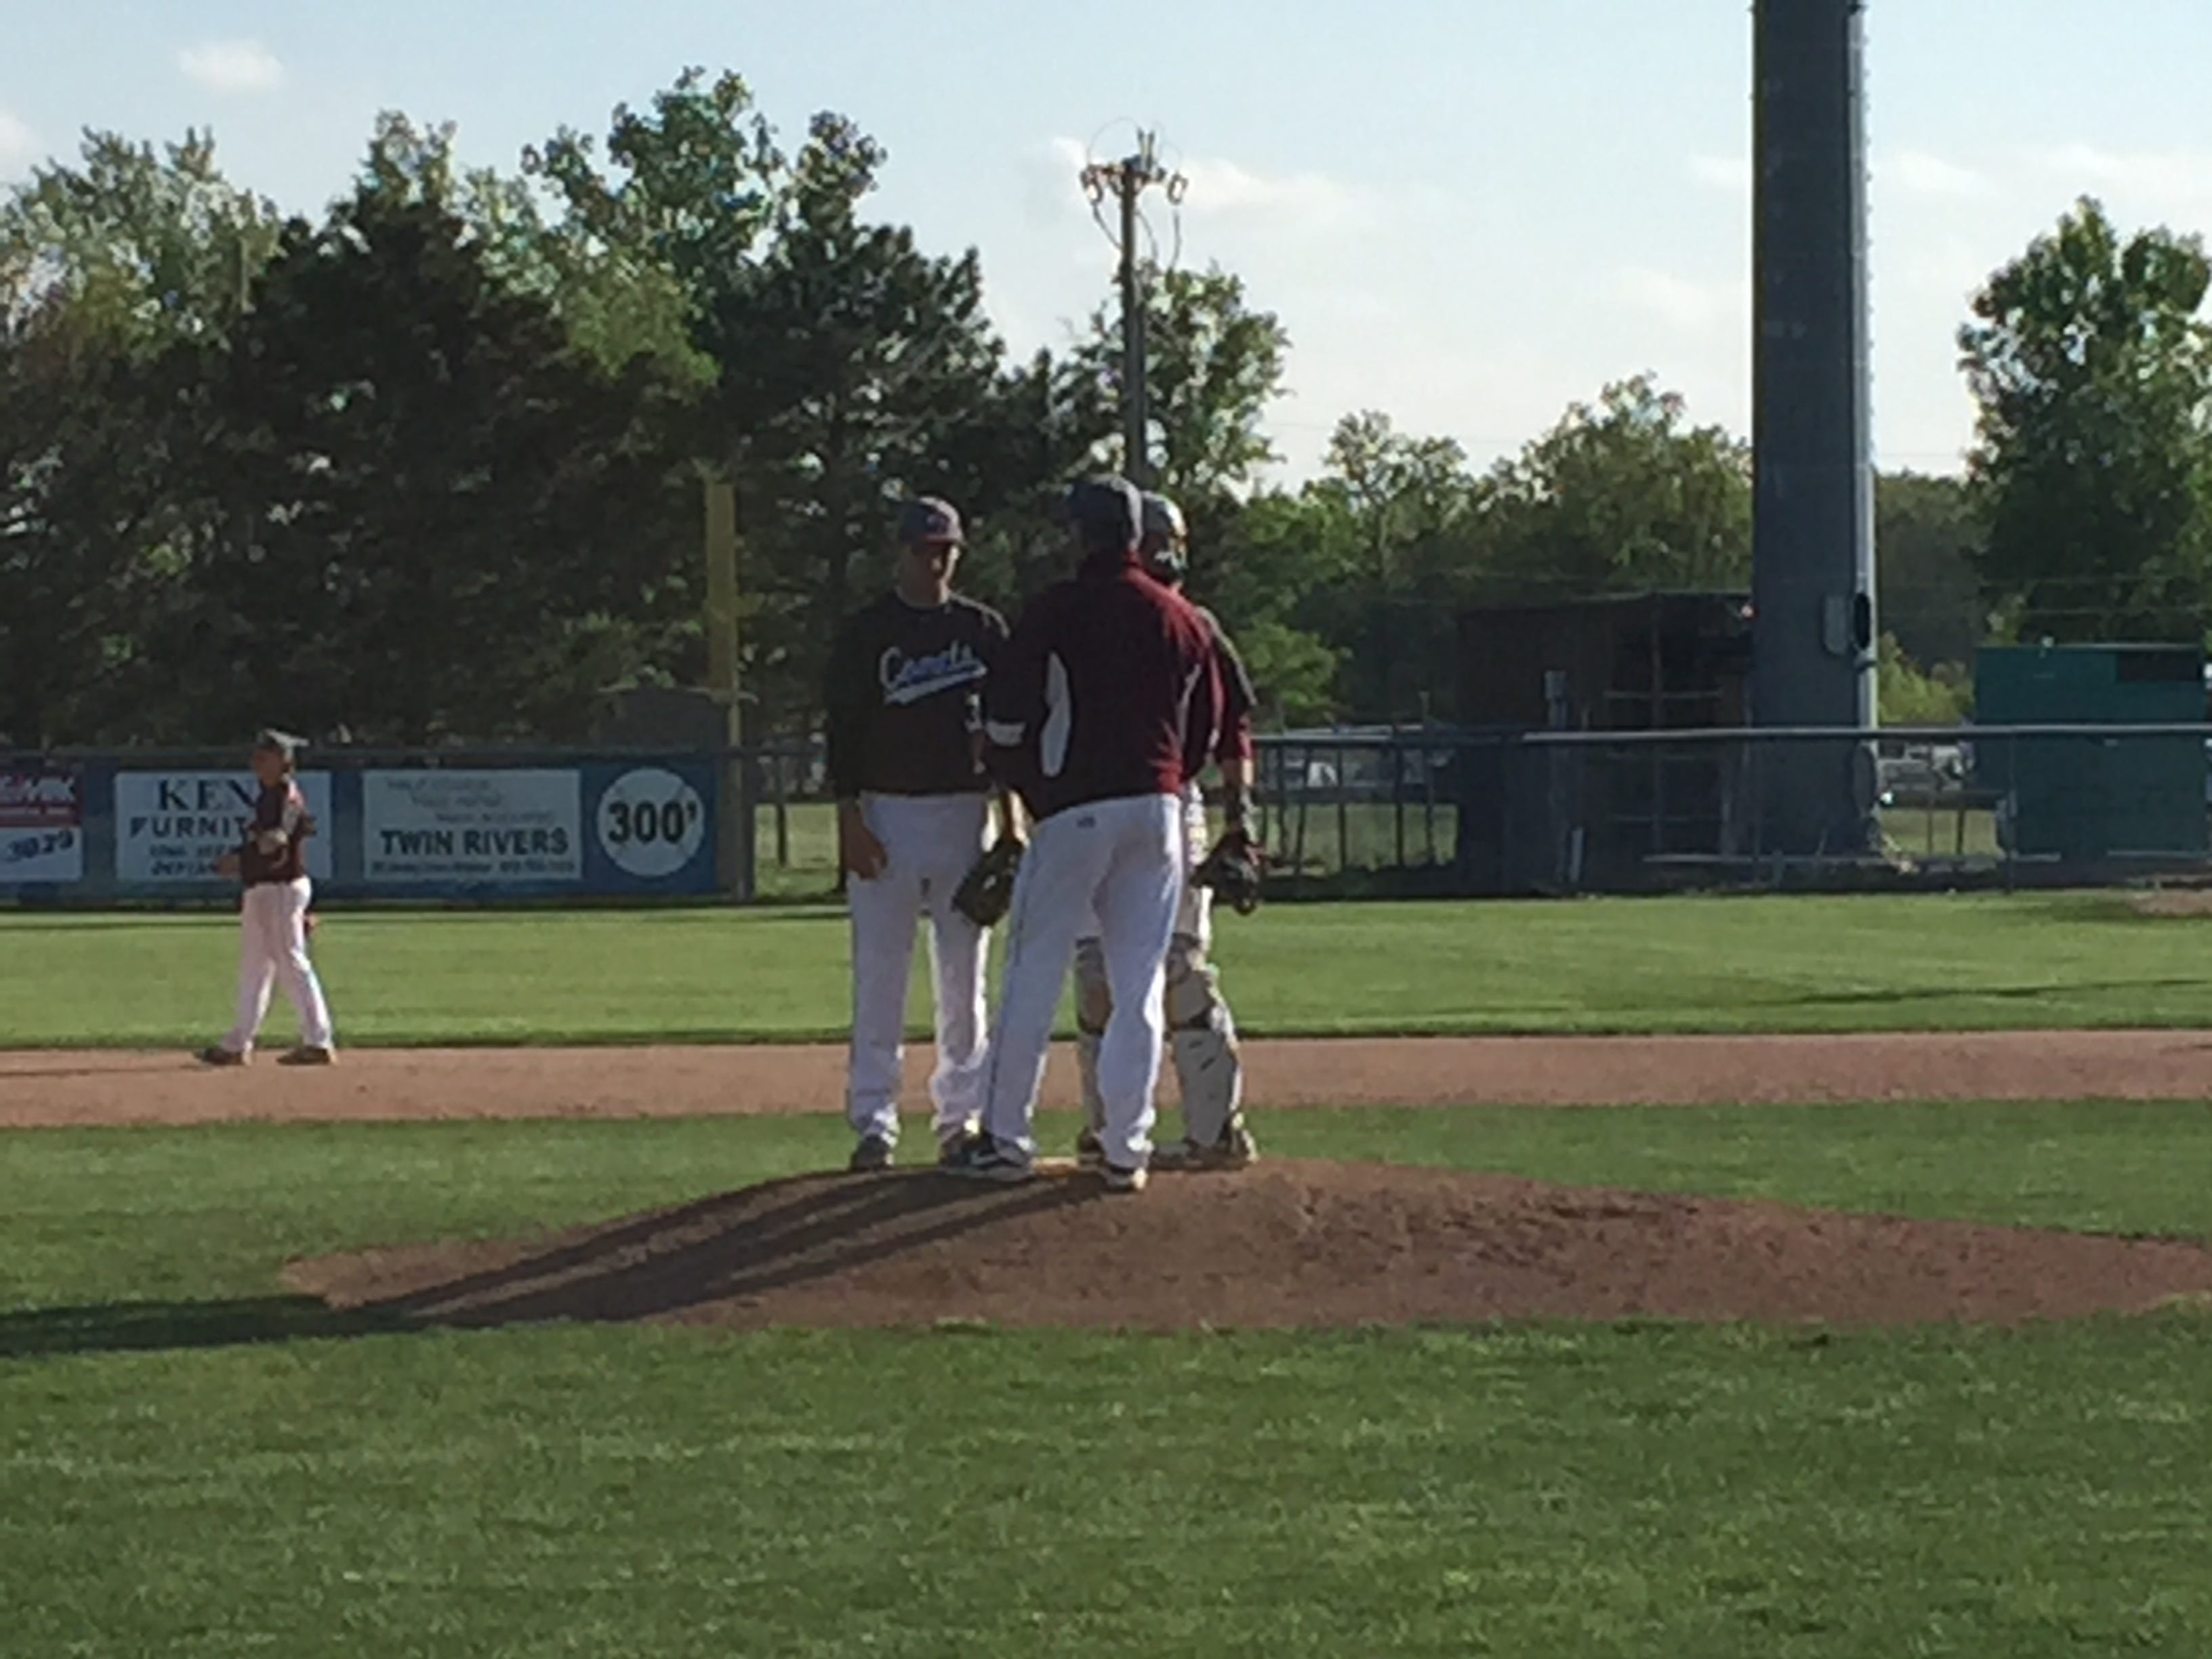 Genoa coach Ron Rightnowar visits pitcher Luke Rightnowar on the mound with two outs and the bases loaded in the top of the seventh inning Thursday against Sherwood Fairview.